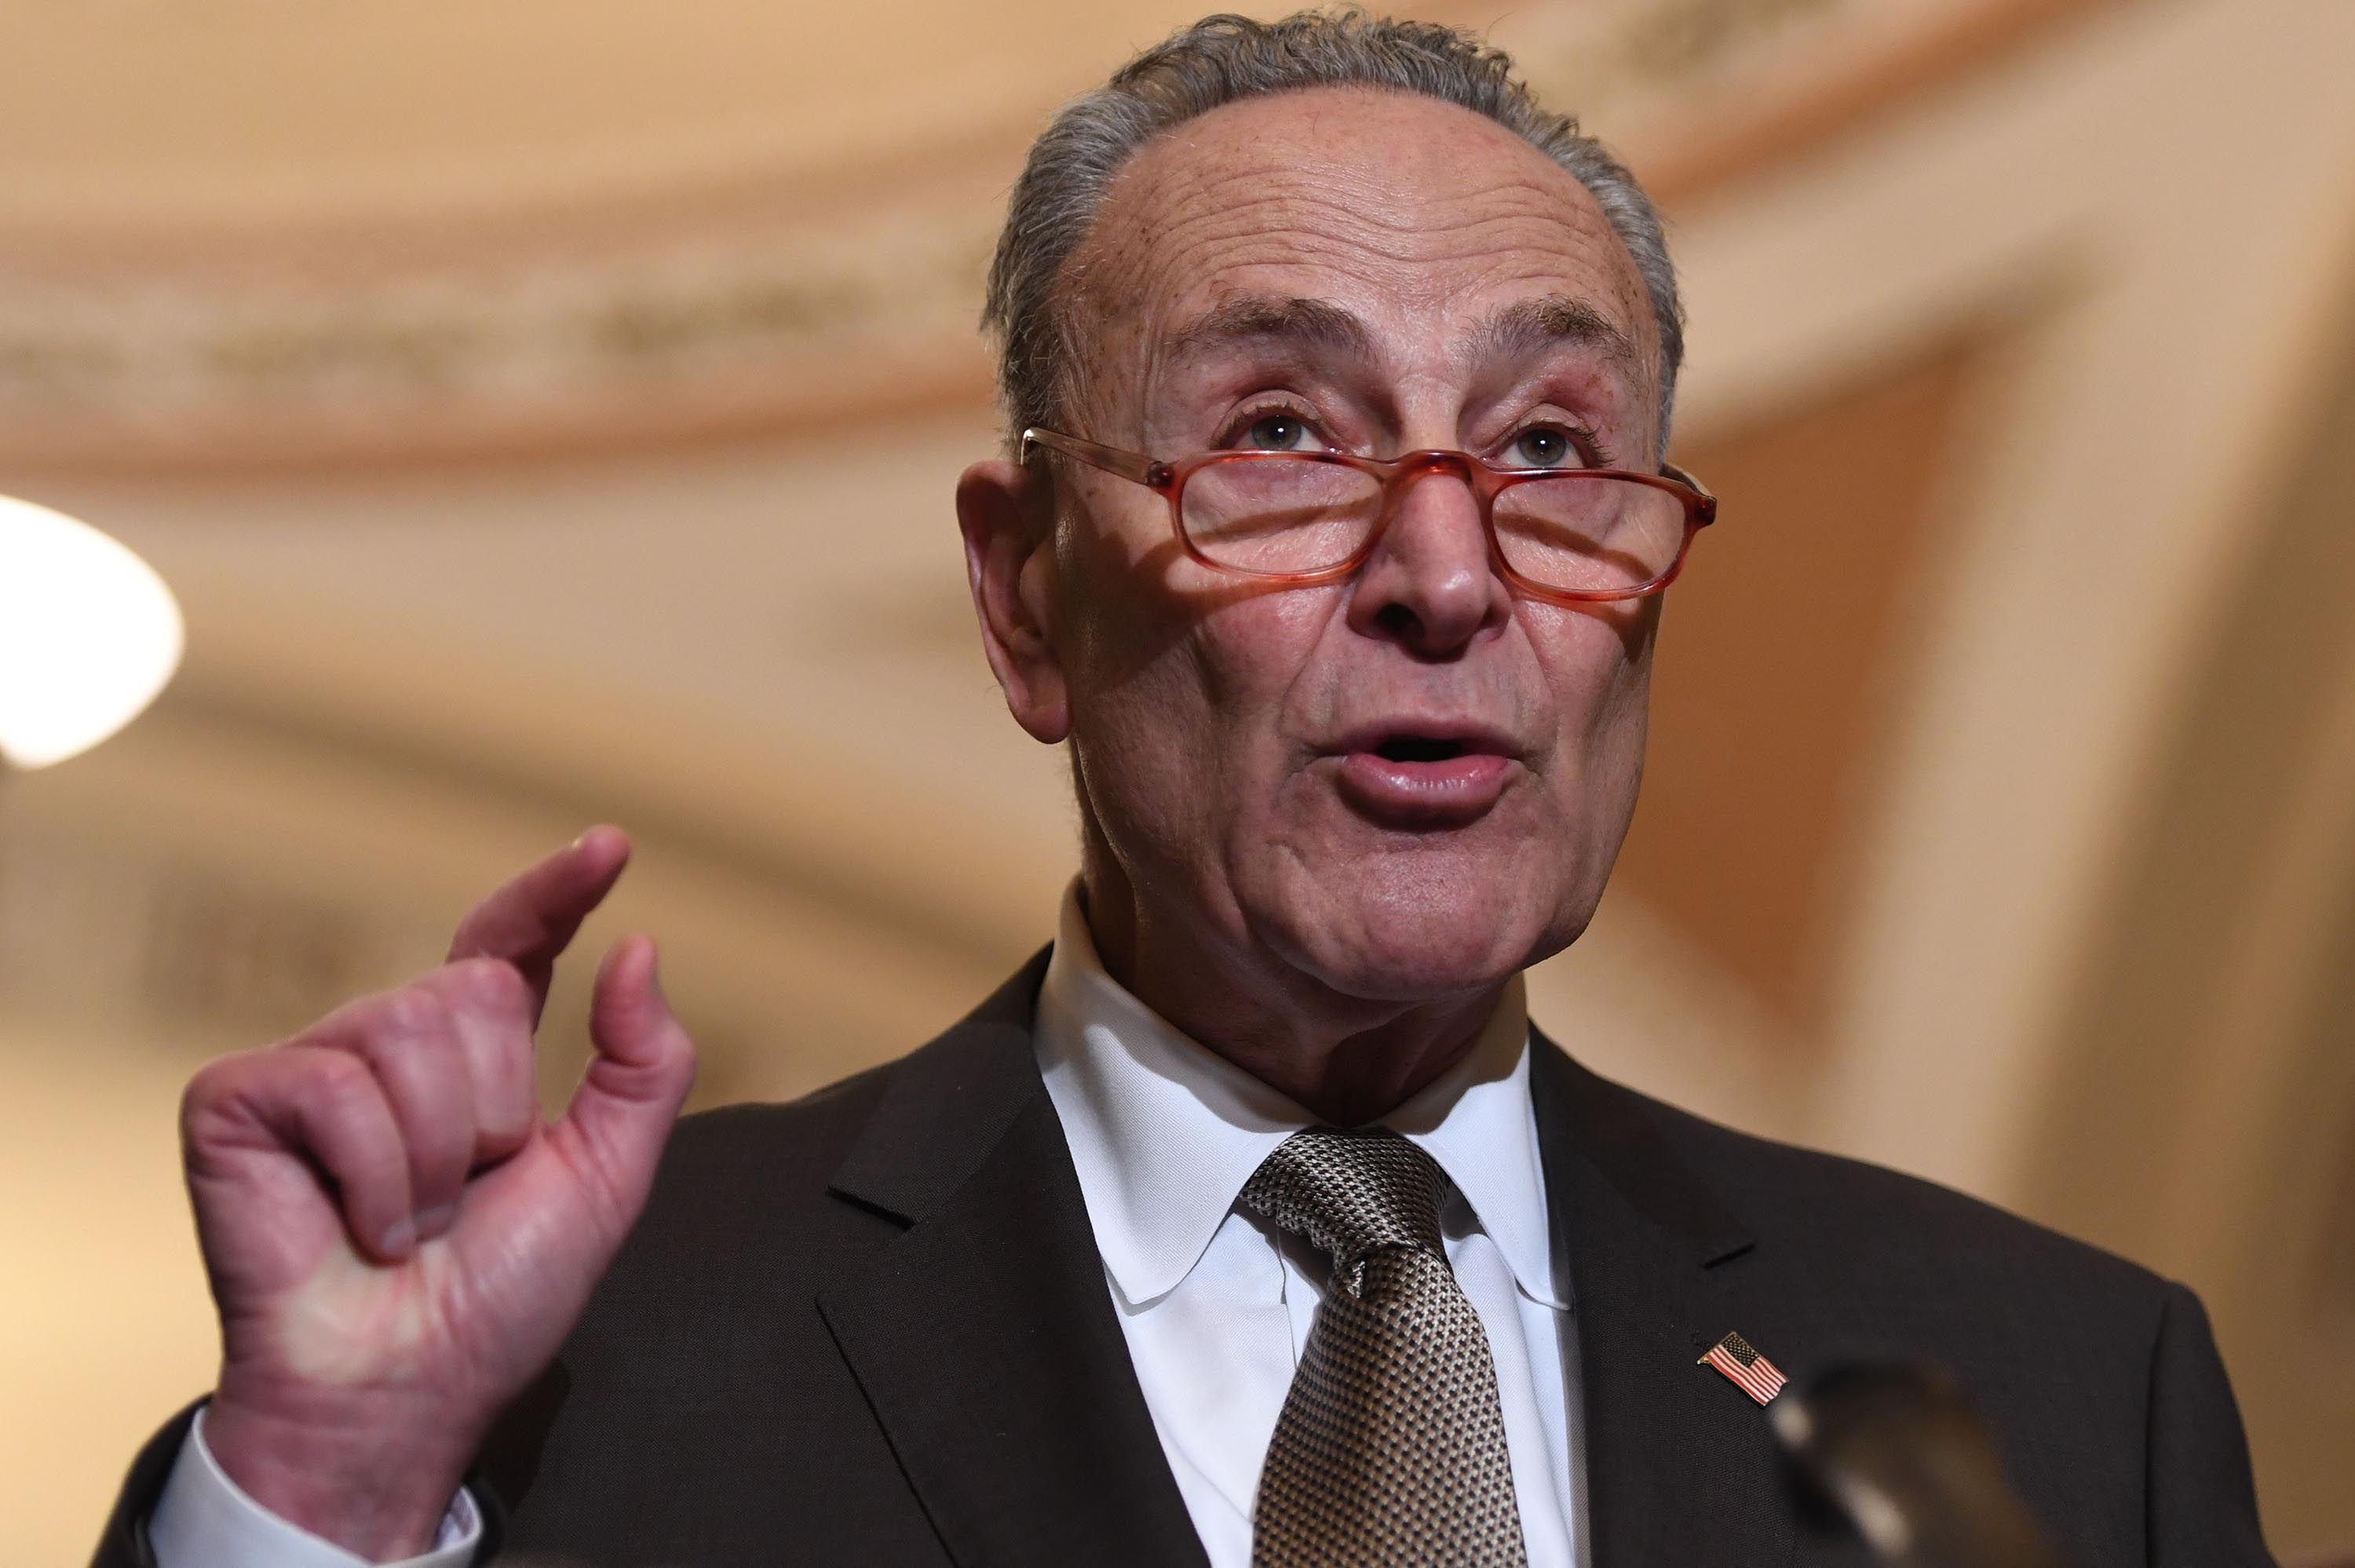 Chuck Schumer speaks during a press conference at the US Capitol in Washington, December 10, 2019.